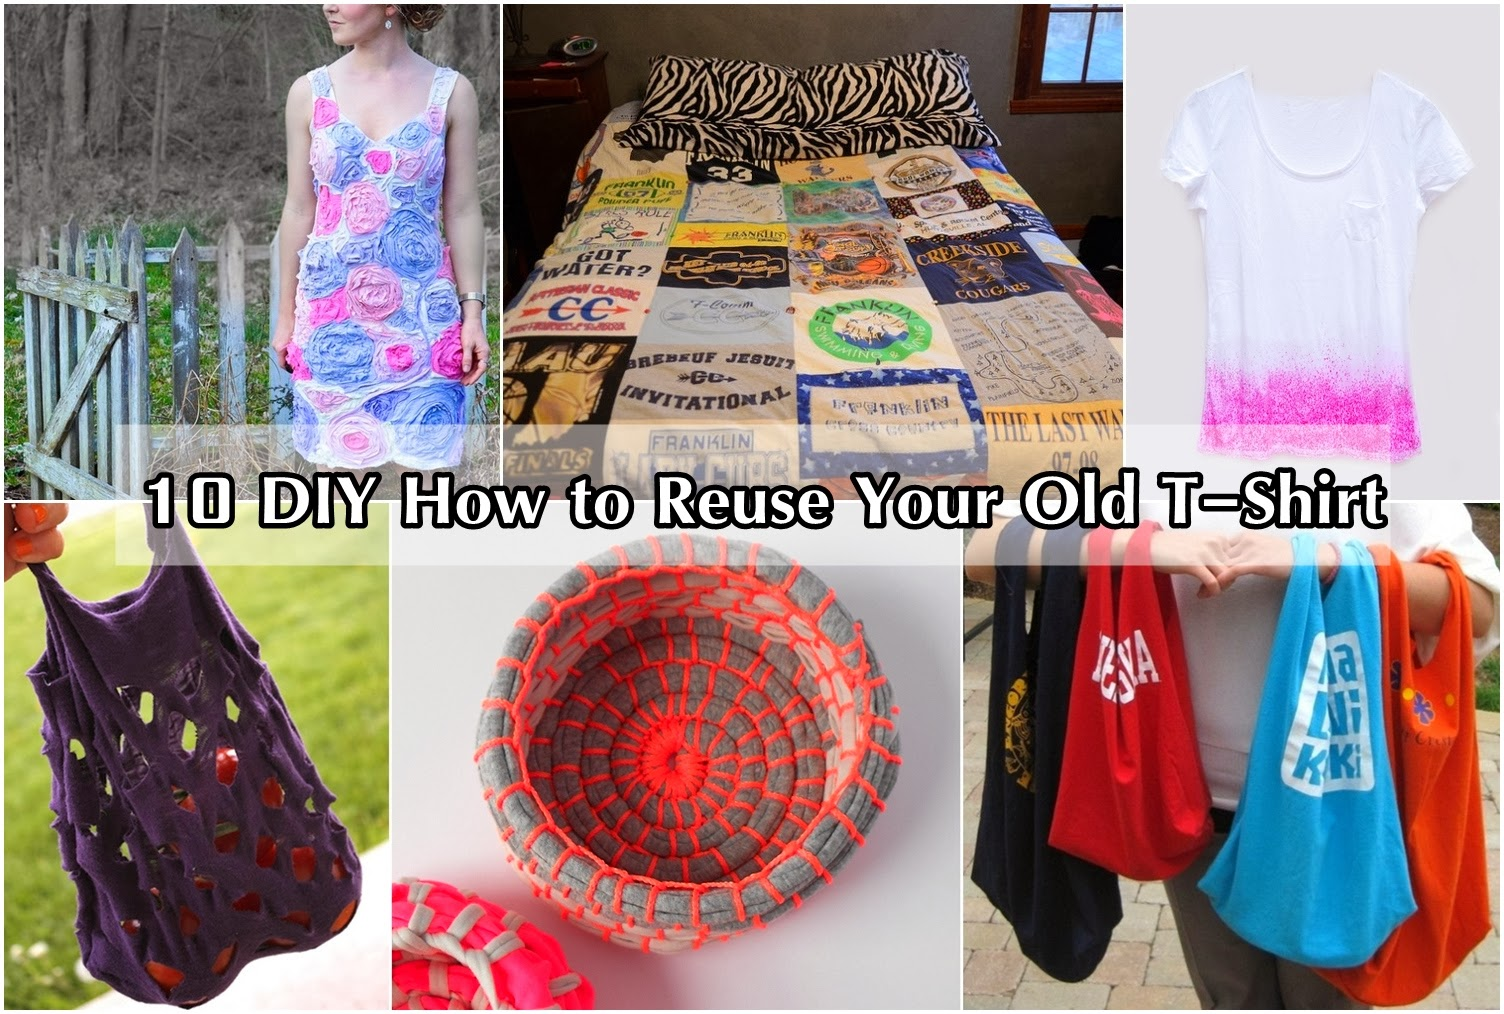 10 diy how to reuse your old t shirt diy craft projects for Craft ideas for old t shirts